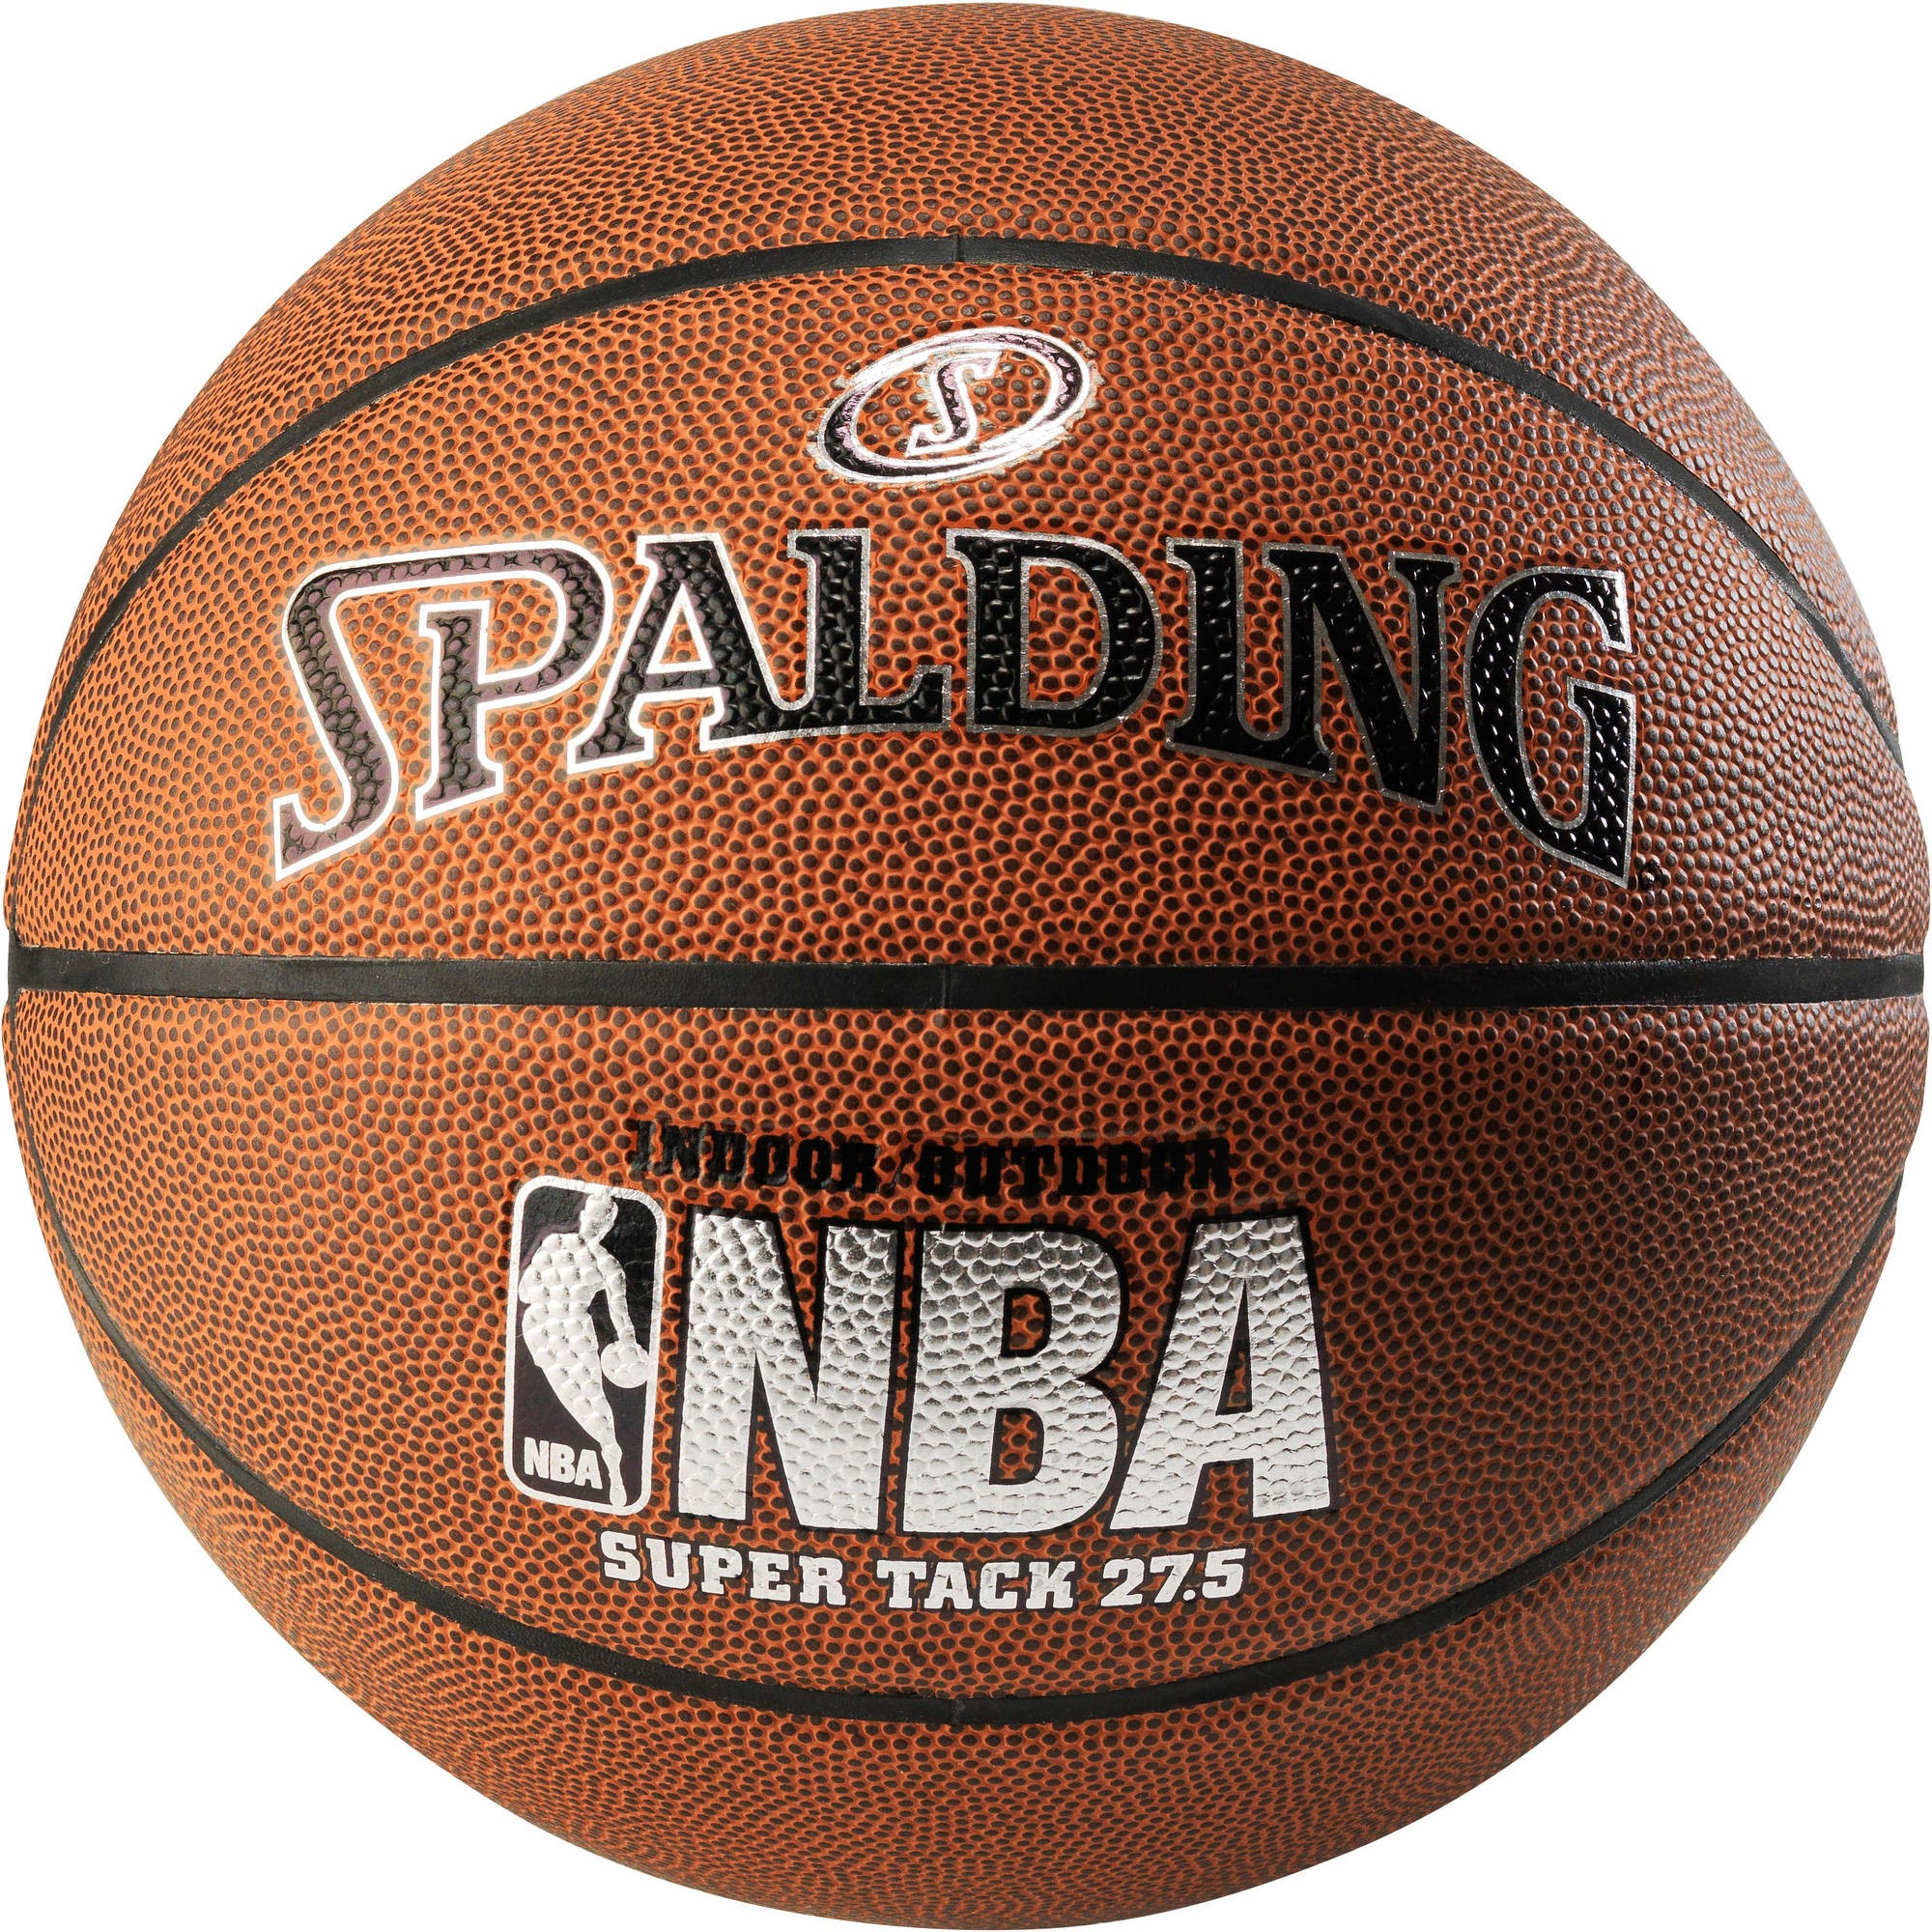 Spalding NBA Super Tack 29.5 Indoor Outdoor Basketball by Wal-Mart Stores, Inc.